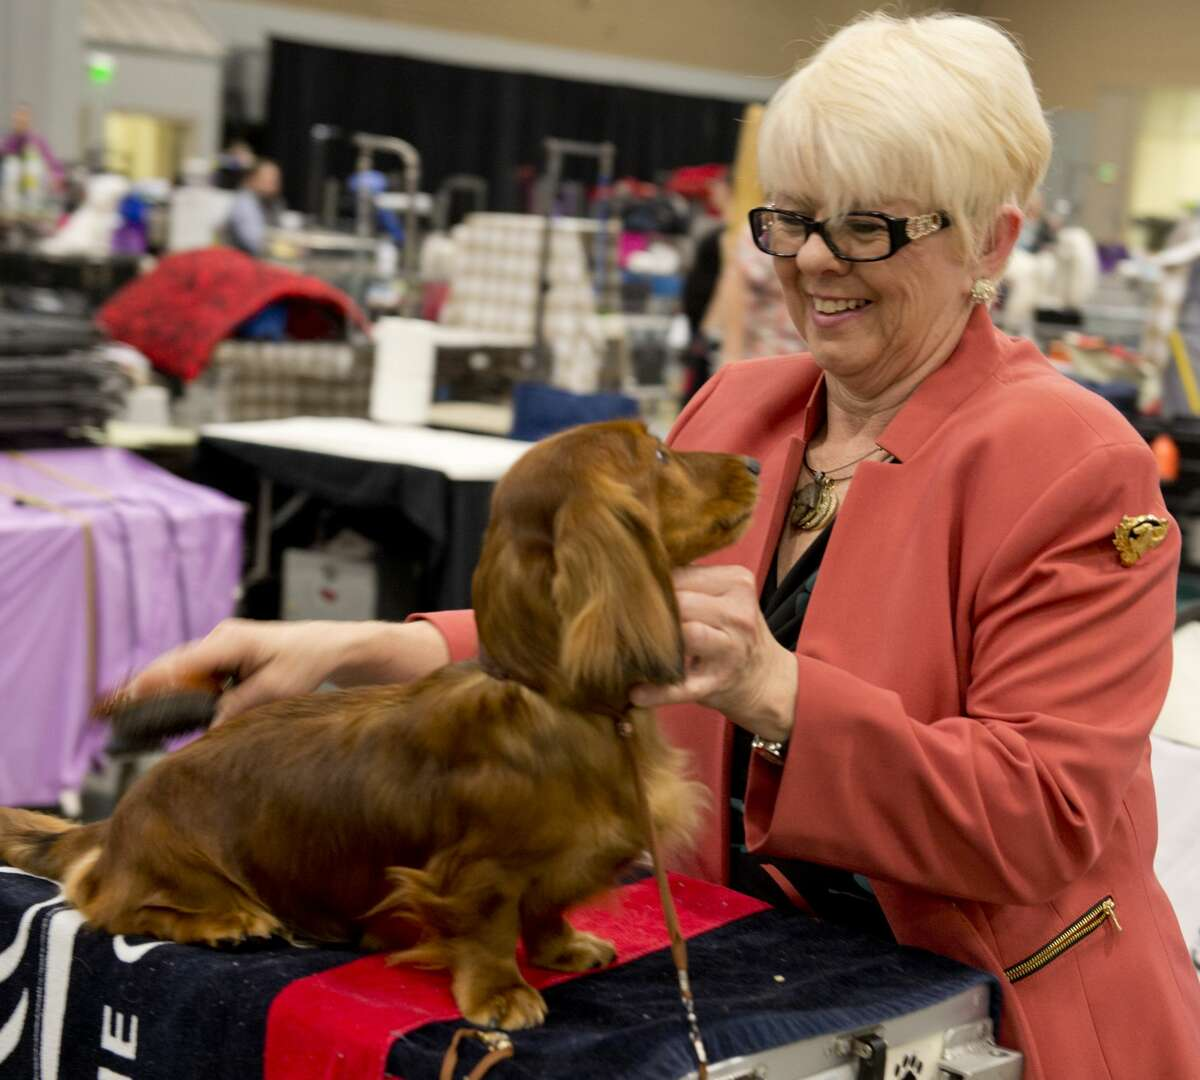 Jeanie Wilson combs her dog 02/15/18 at the West Texas and Big Spring Kennel Club's Dog Show at the Horseshoe Pavilion. Tim Fischer/Reporter-Telegram